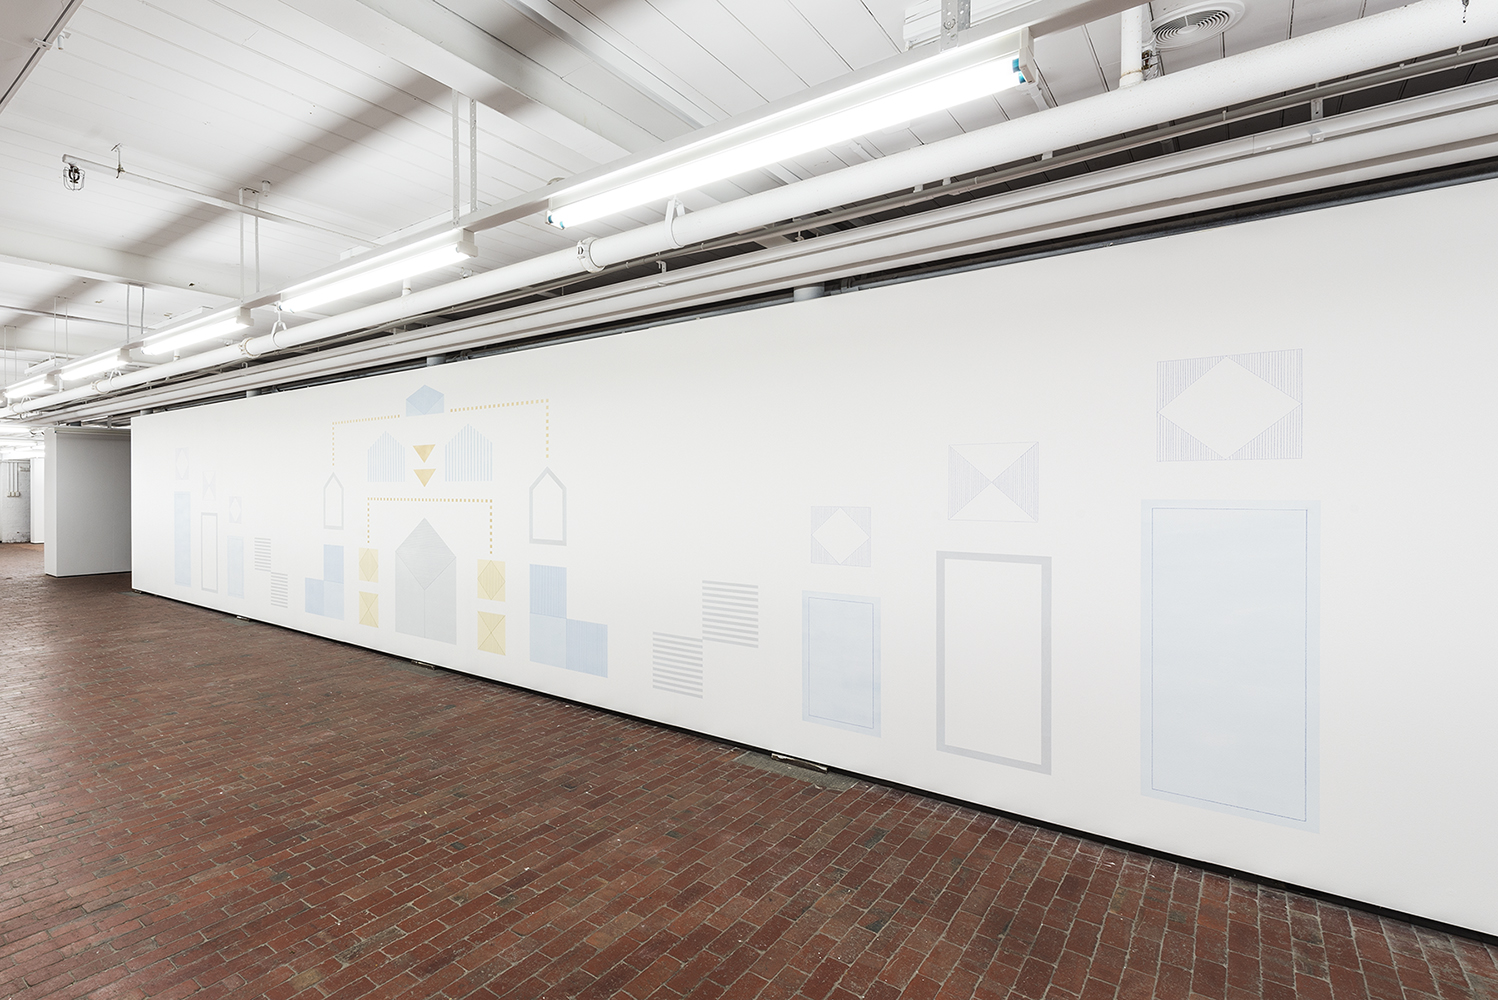 Shifting Shapes, Forming Spaces   Installation View